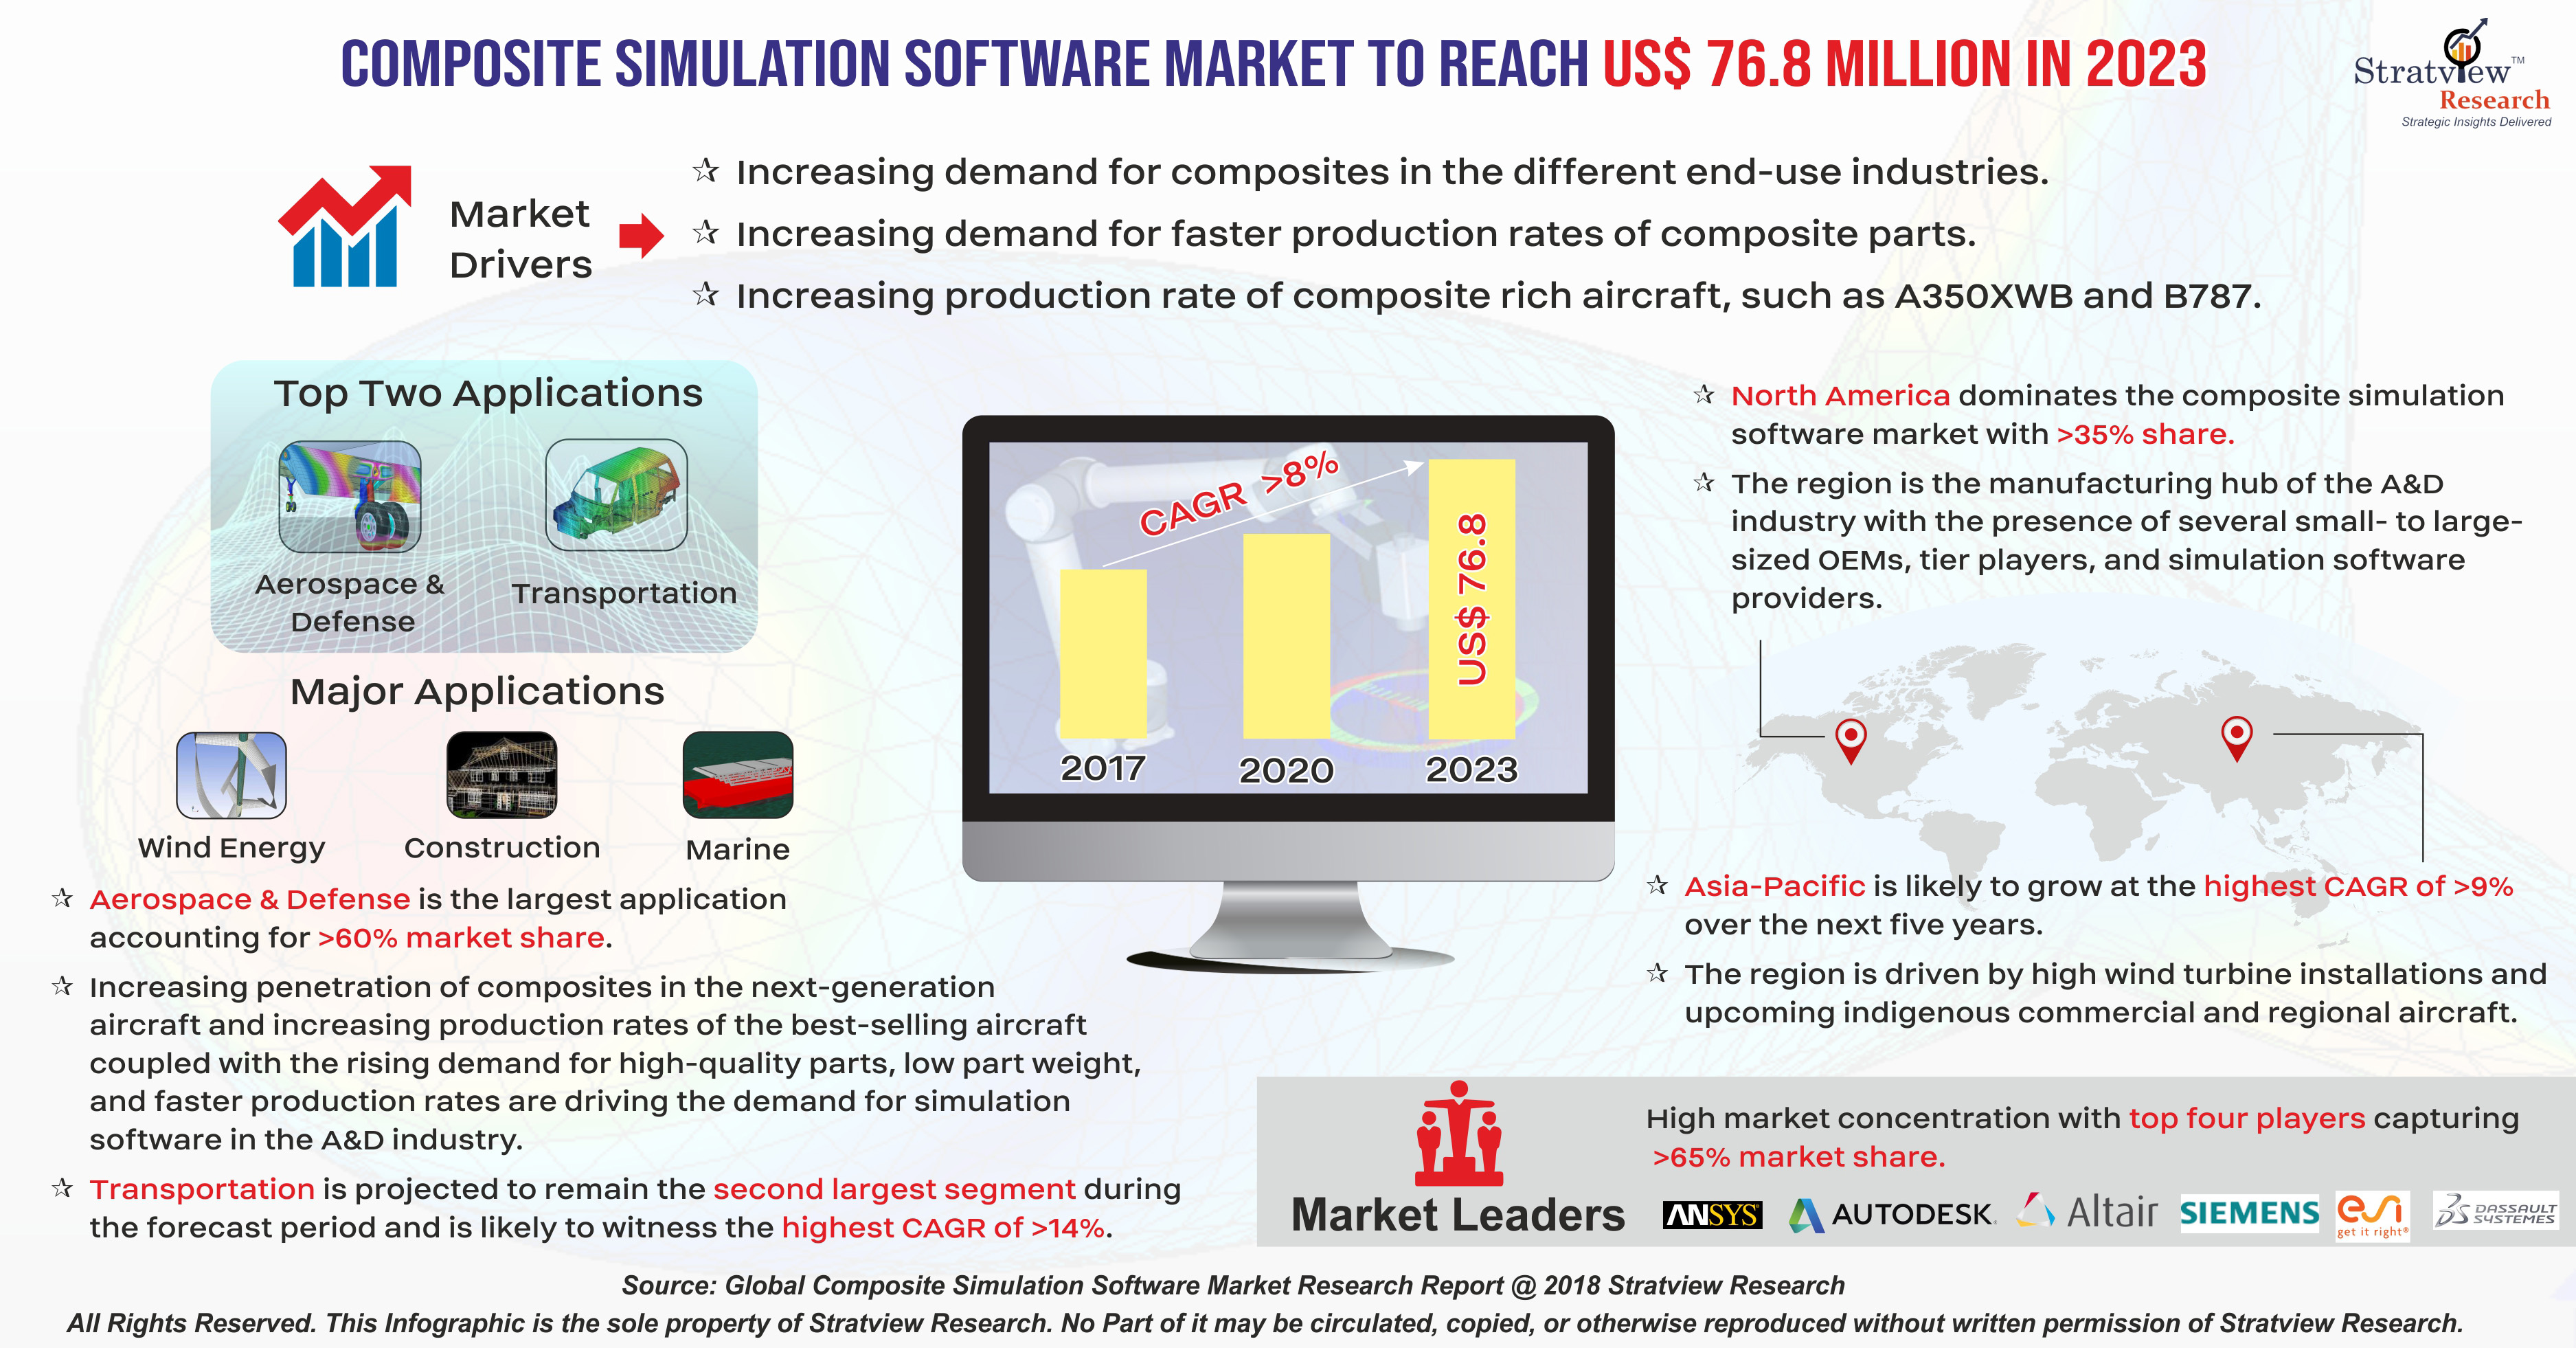 Composite Simulation Software Market